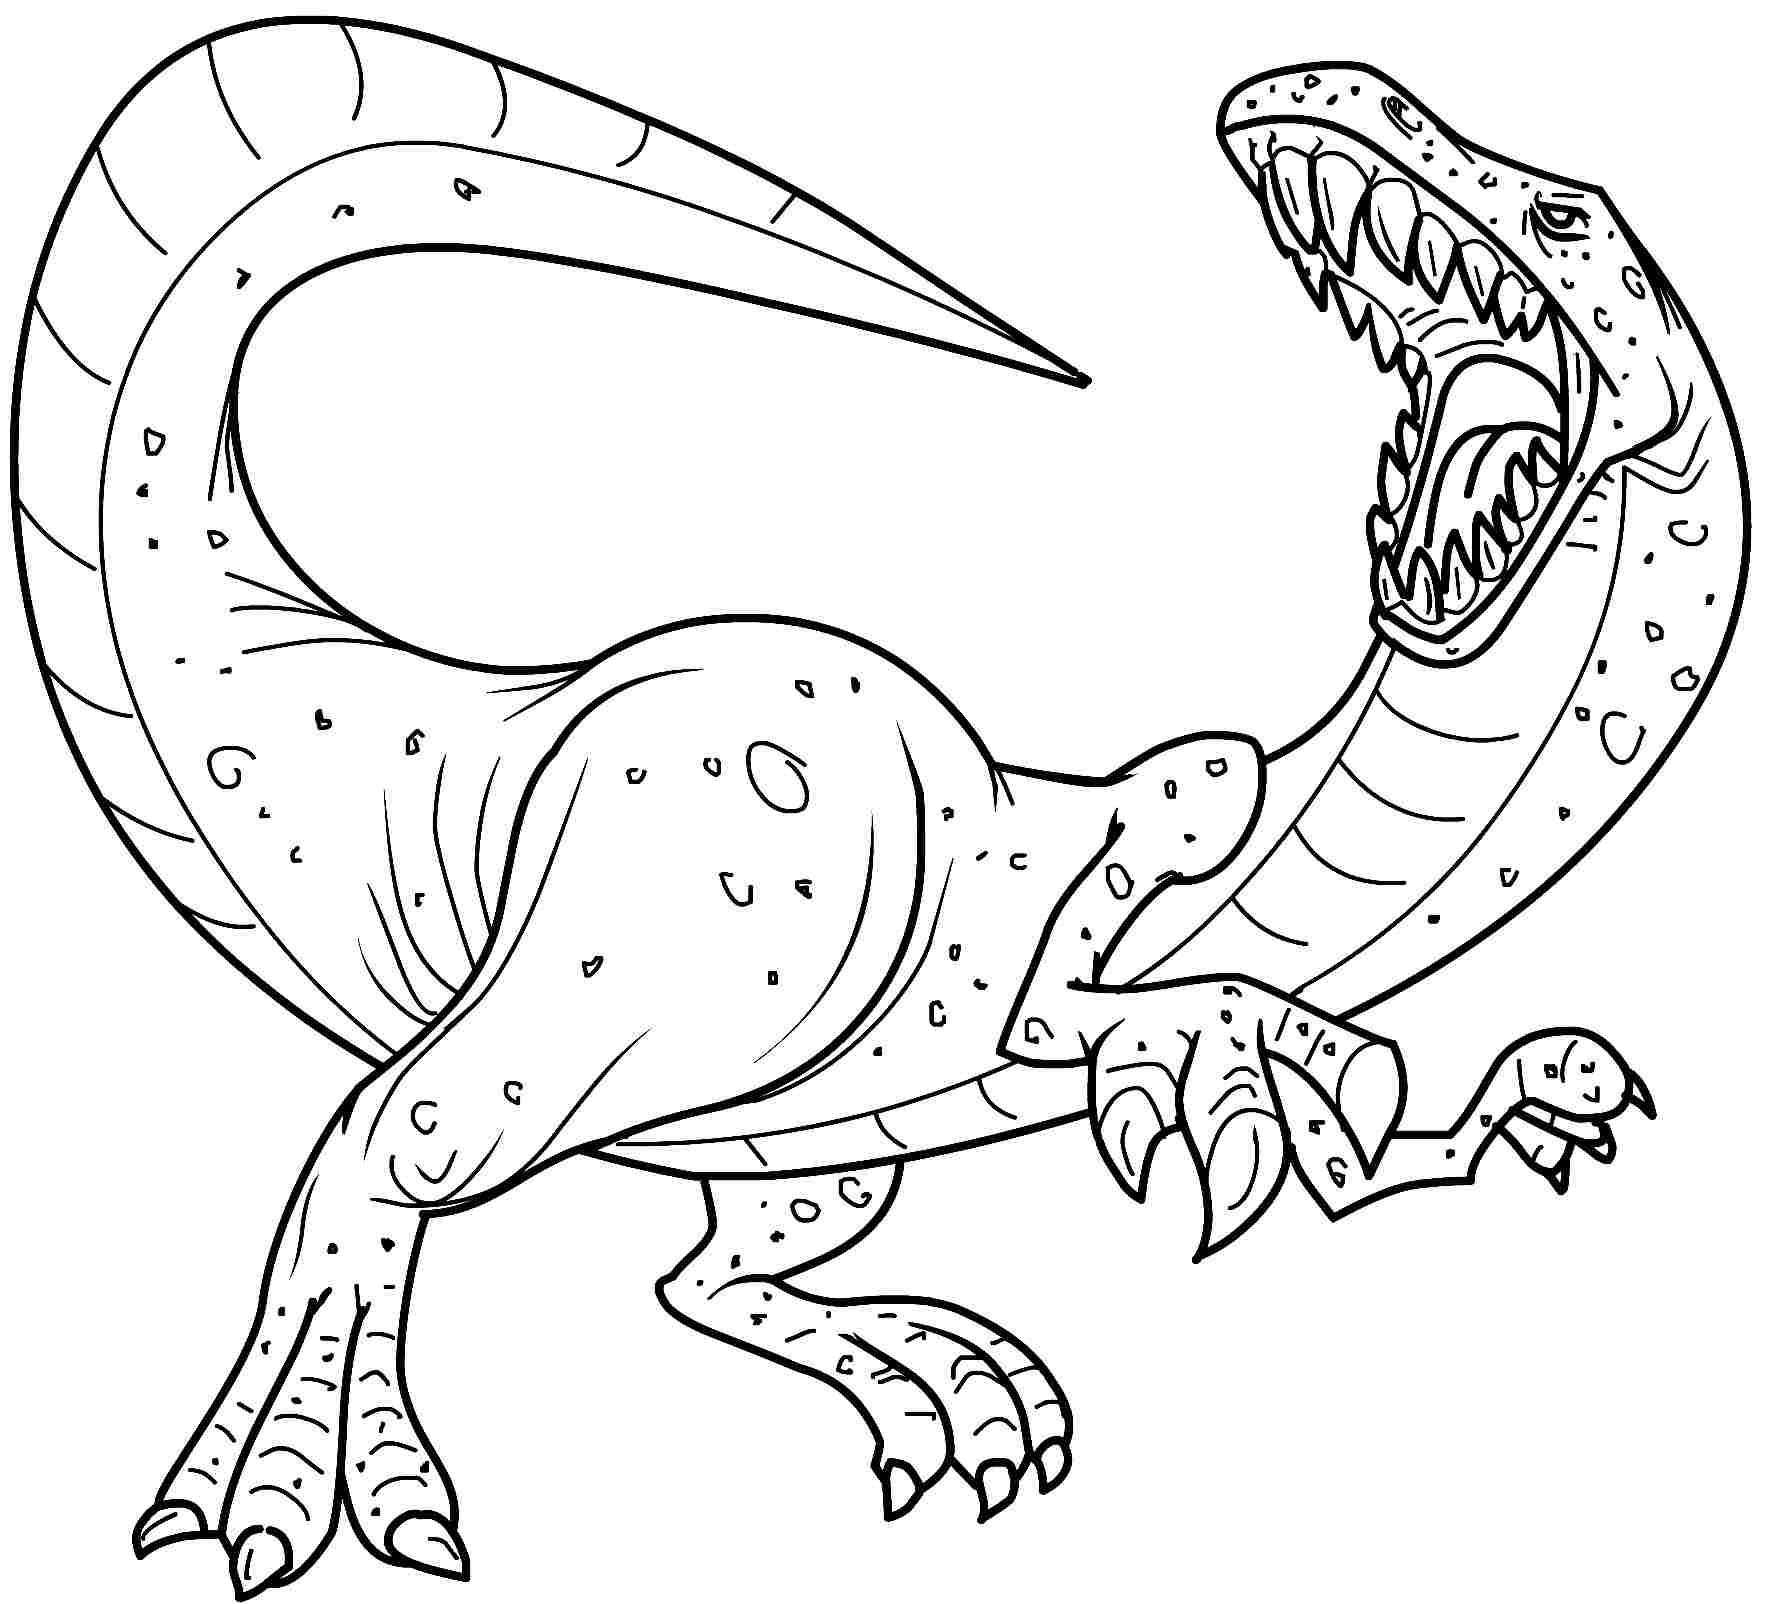 dinosaur facts and coloring pages - photo#21